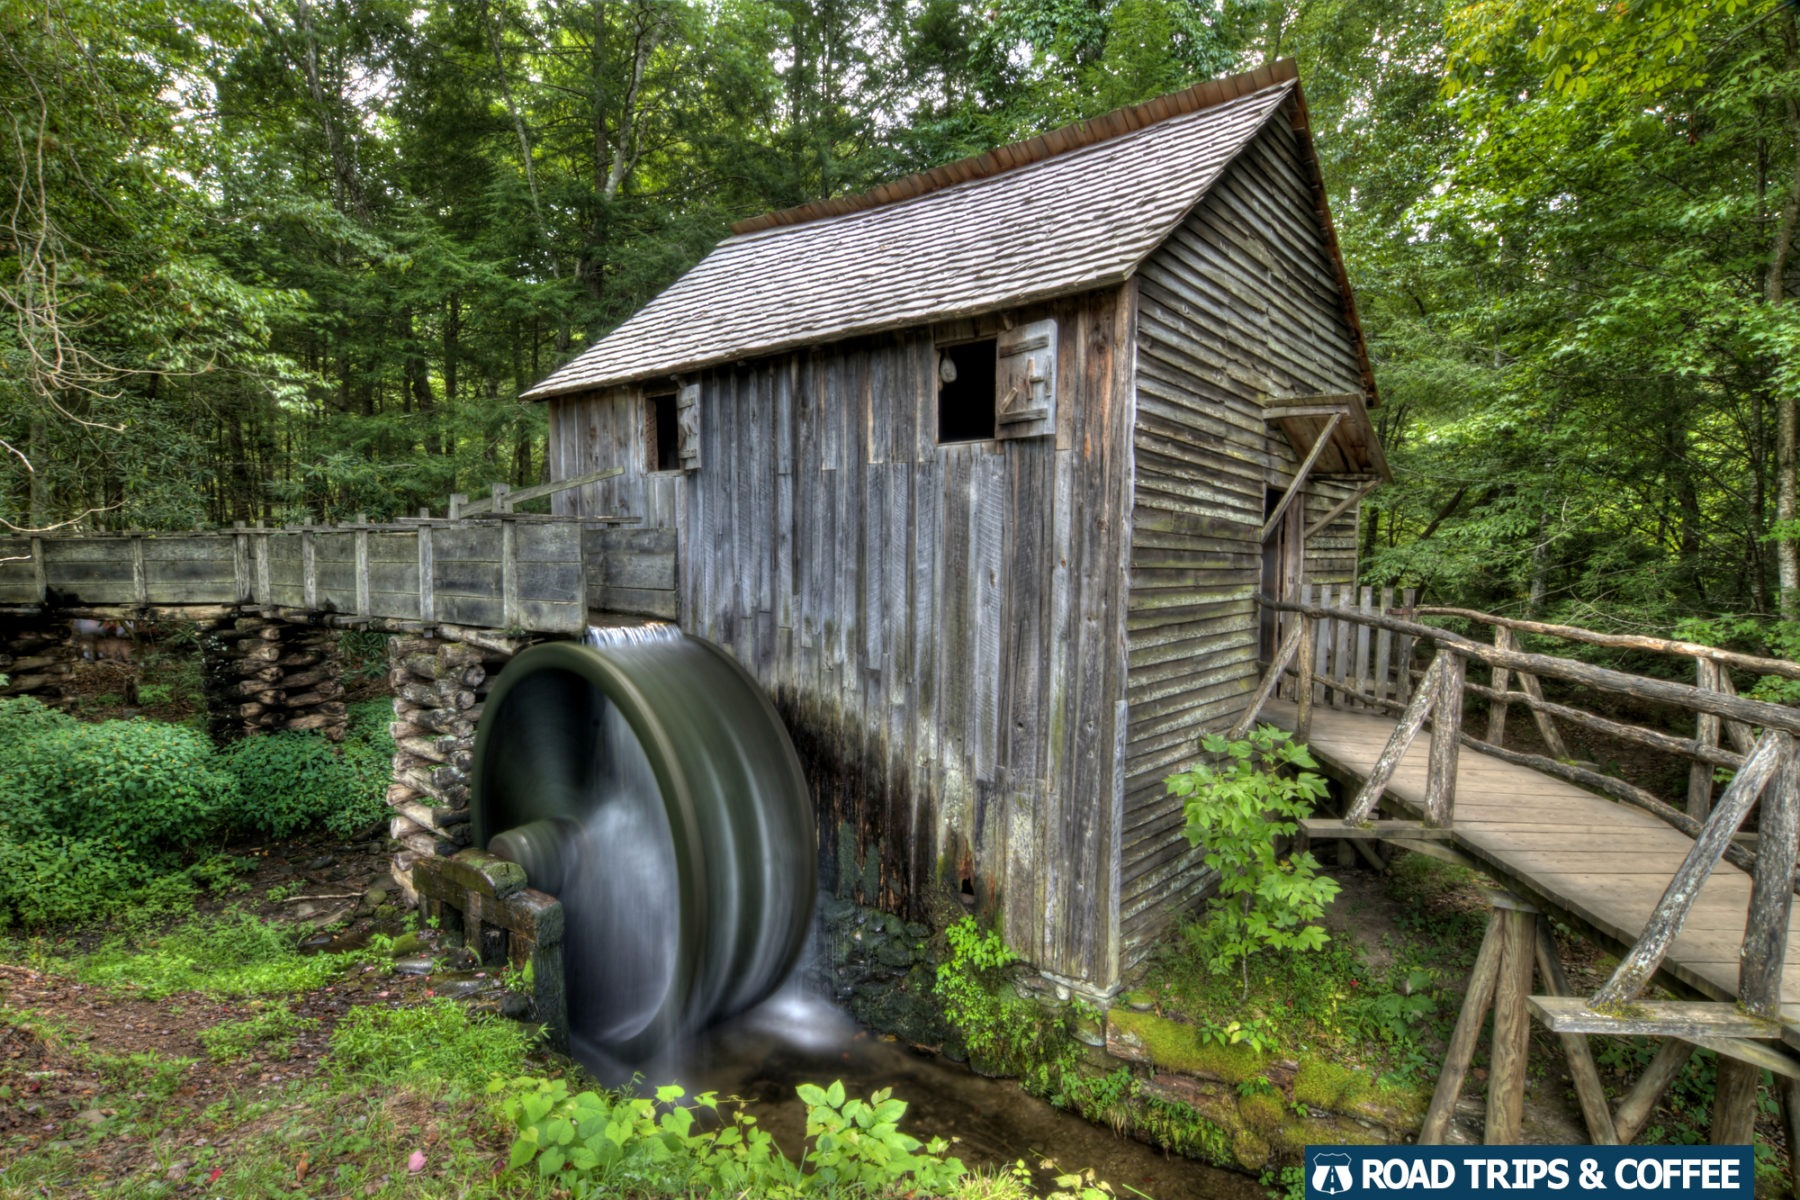 Water spins the wooden wheel at the John Cable Grist Mill in Cades Cove in the Great Smoky Mountains National Park